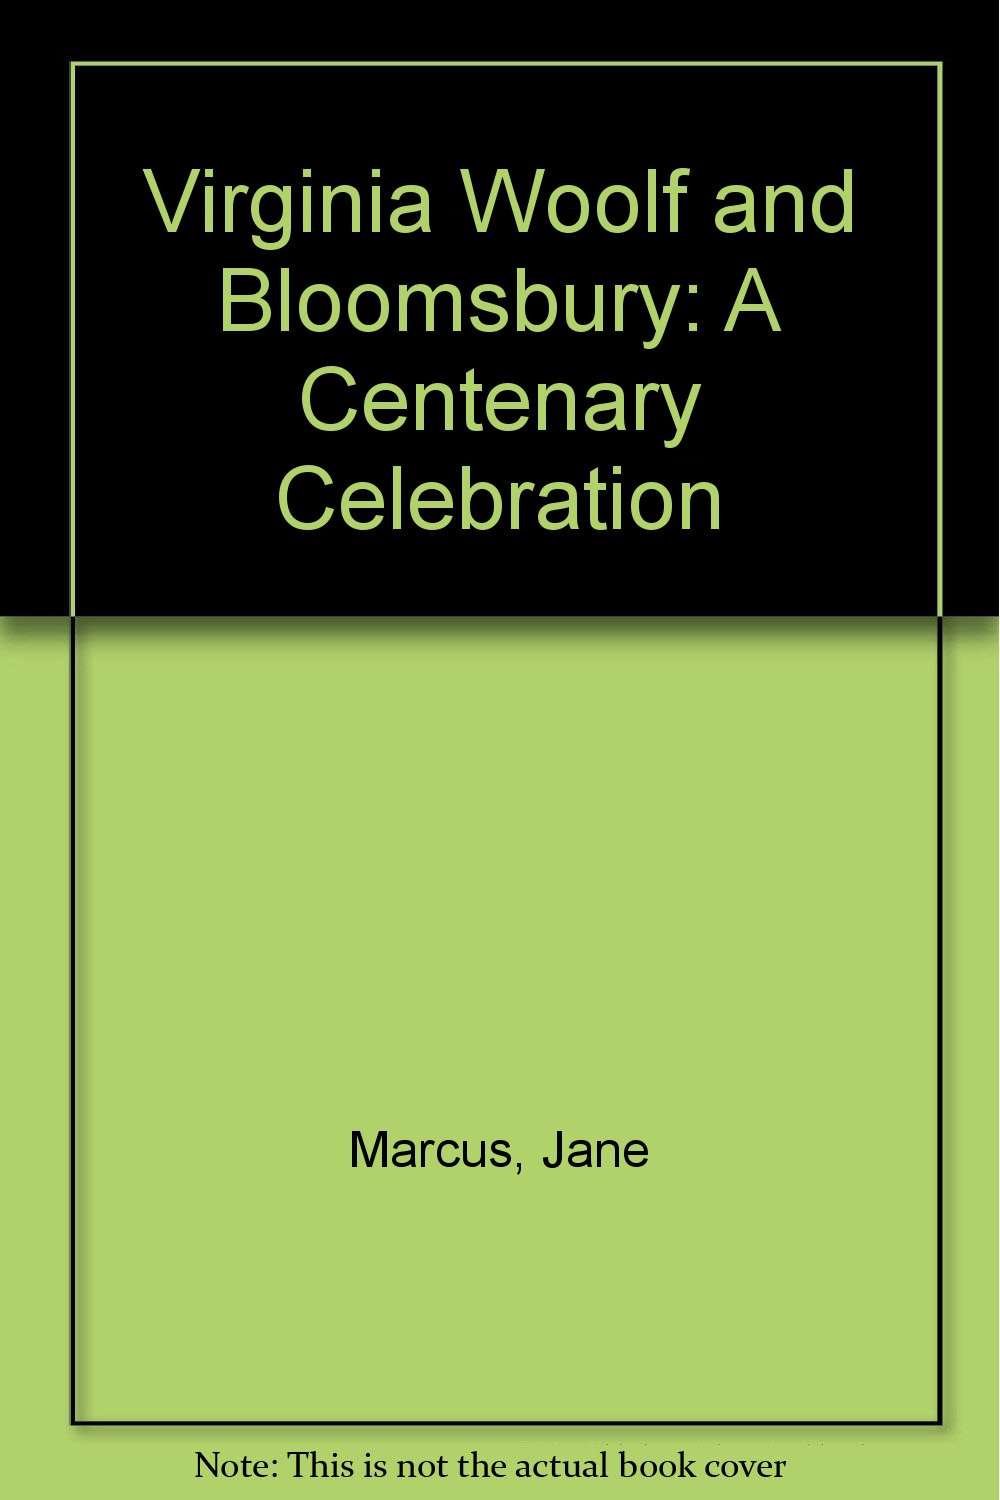 Virginia Woolf and Bloomsbury: A Centenary Celebration